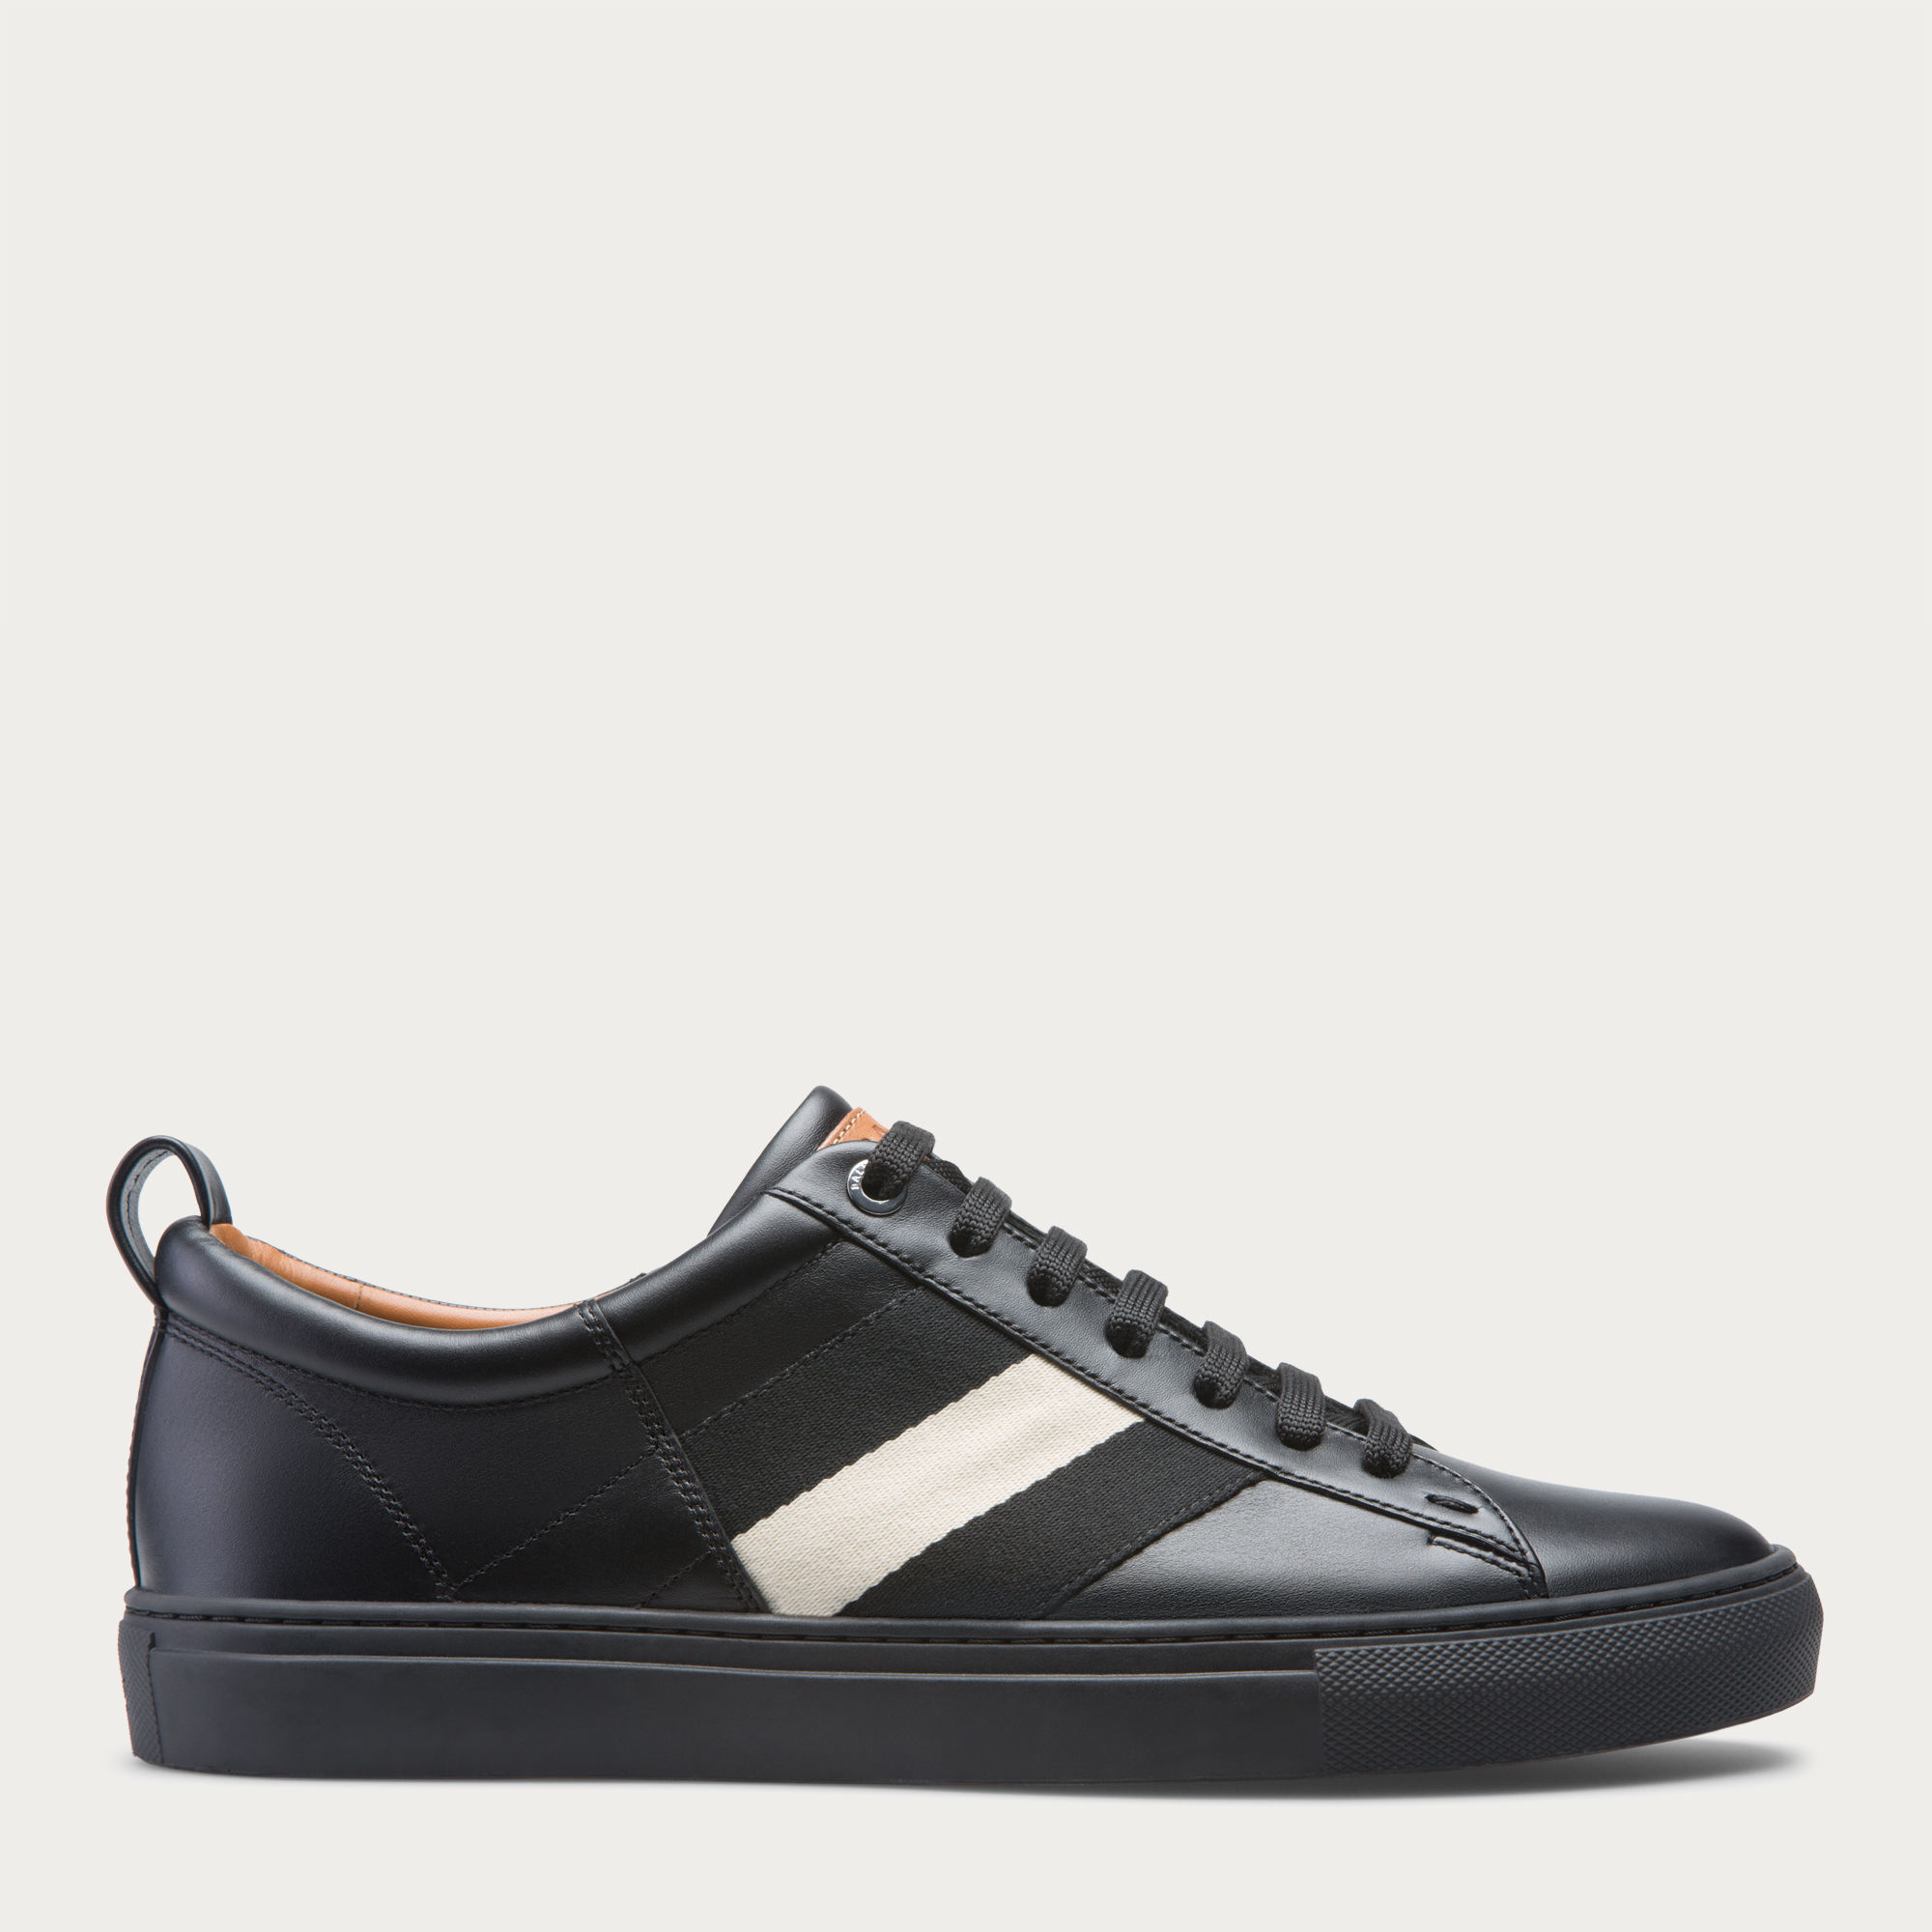 Mens Bally Shoes Prices